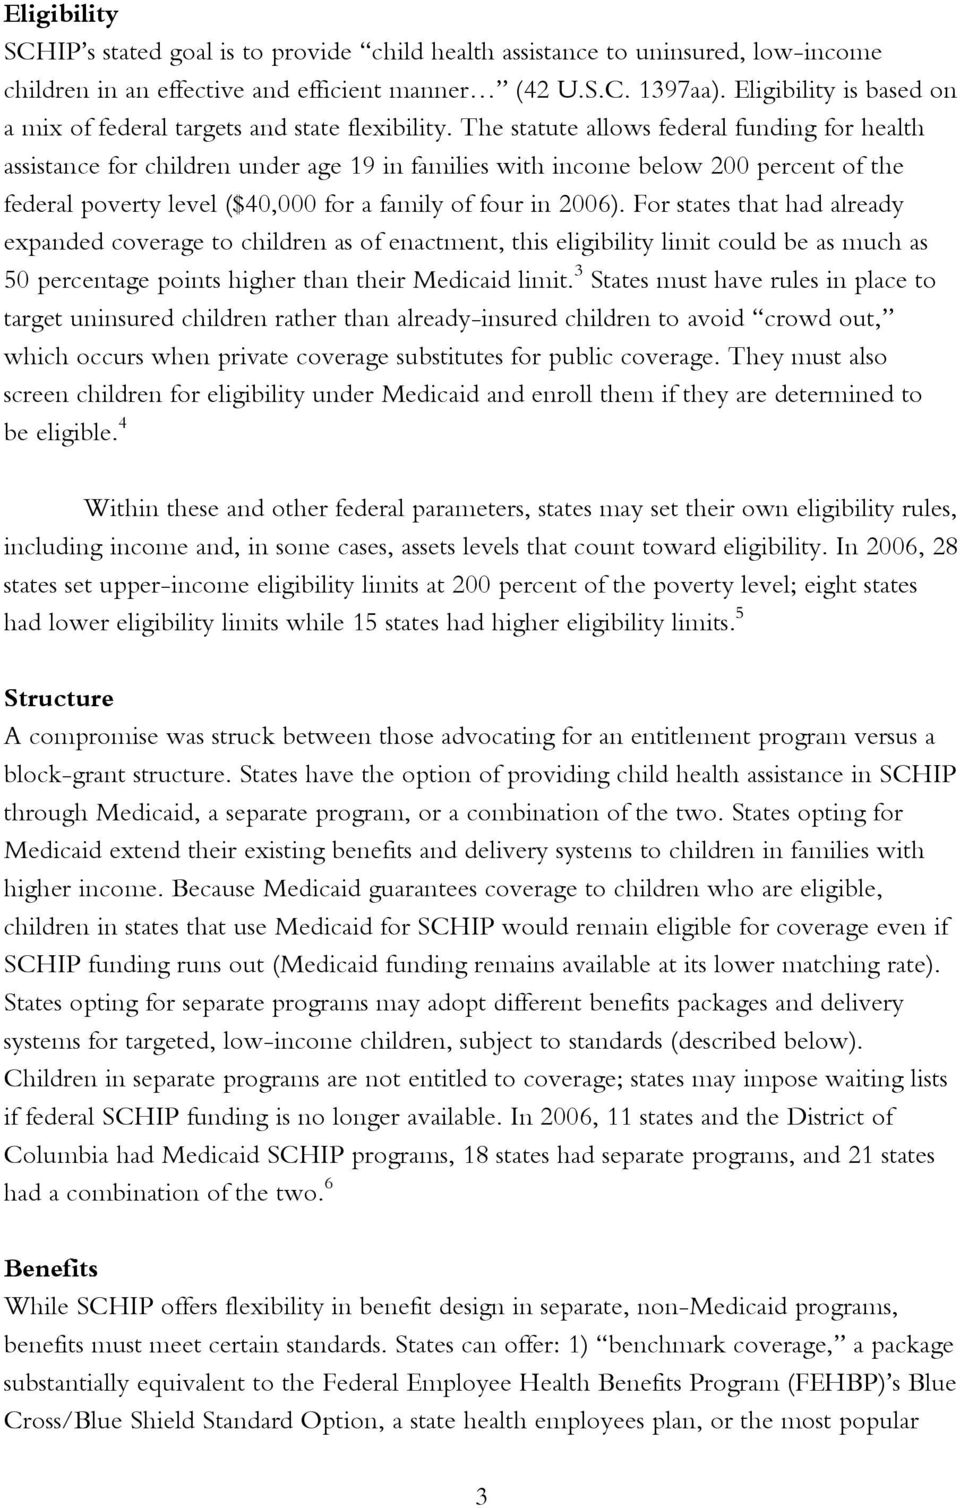 The statute allows federal funding for health assistance for children under age 19 in families with income below 200 percent of the federal poverty level ($40,000 for a family of four in 2006).